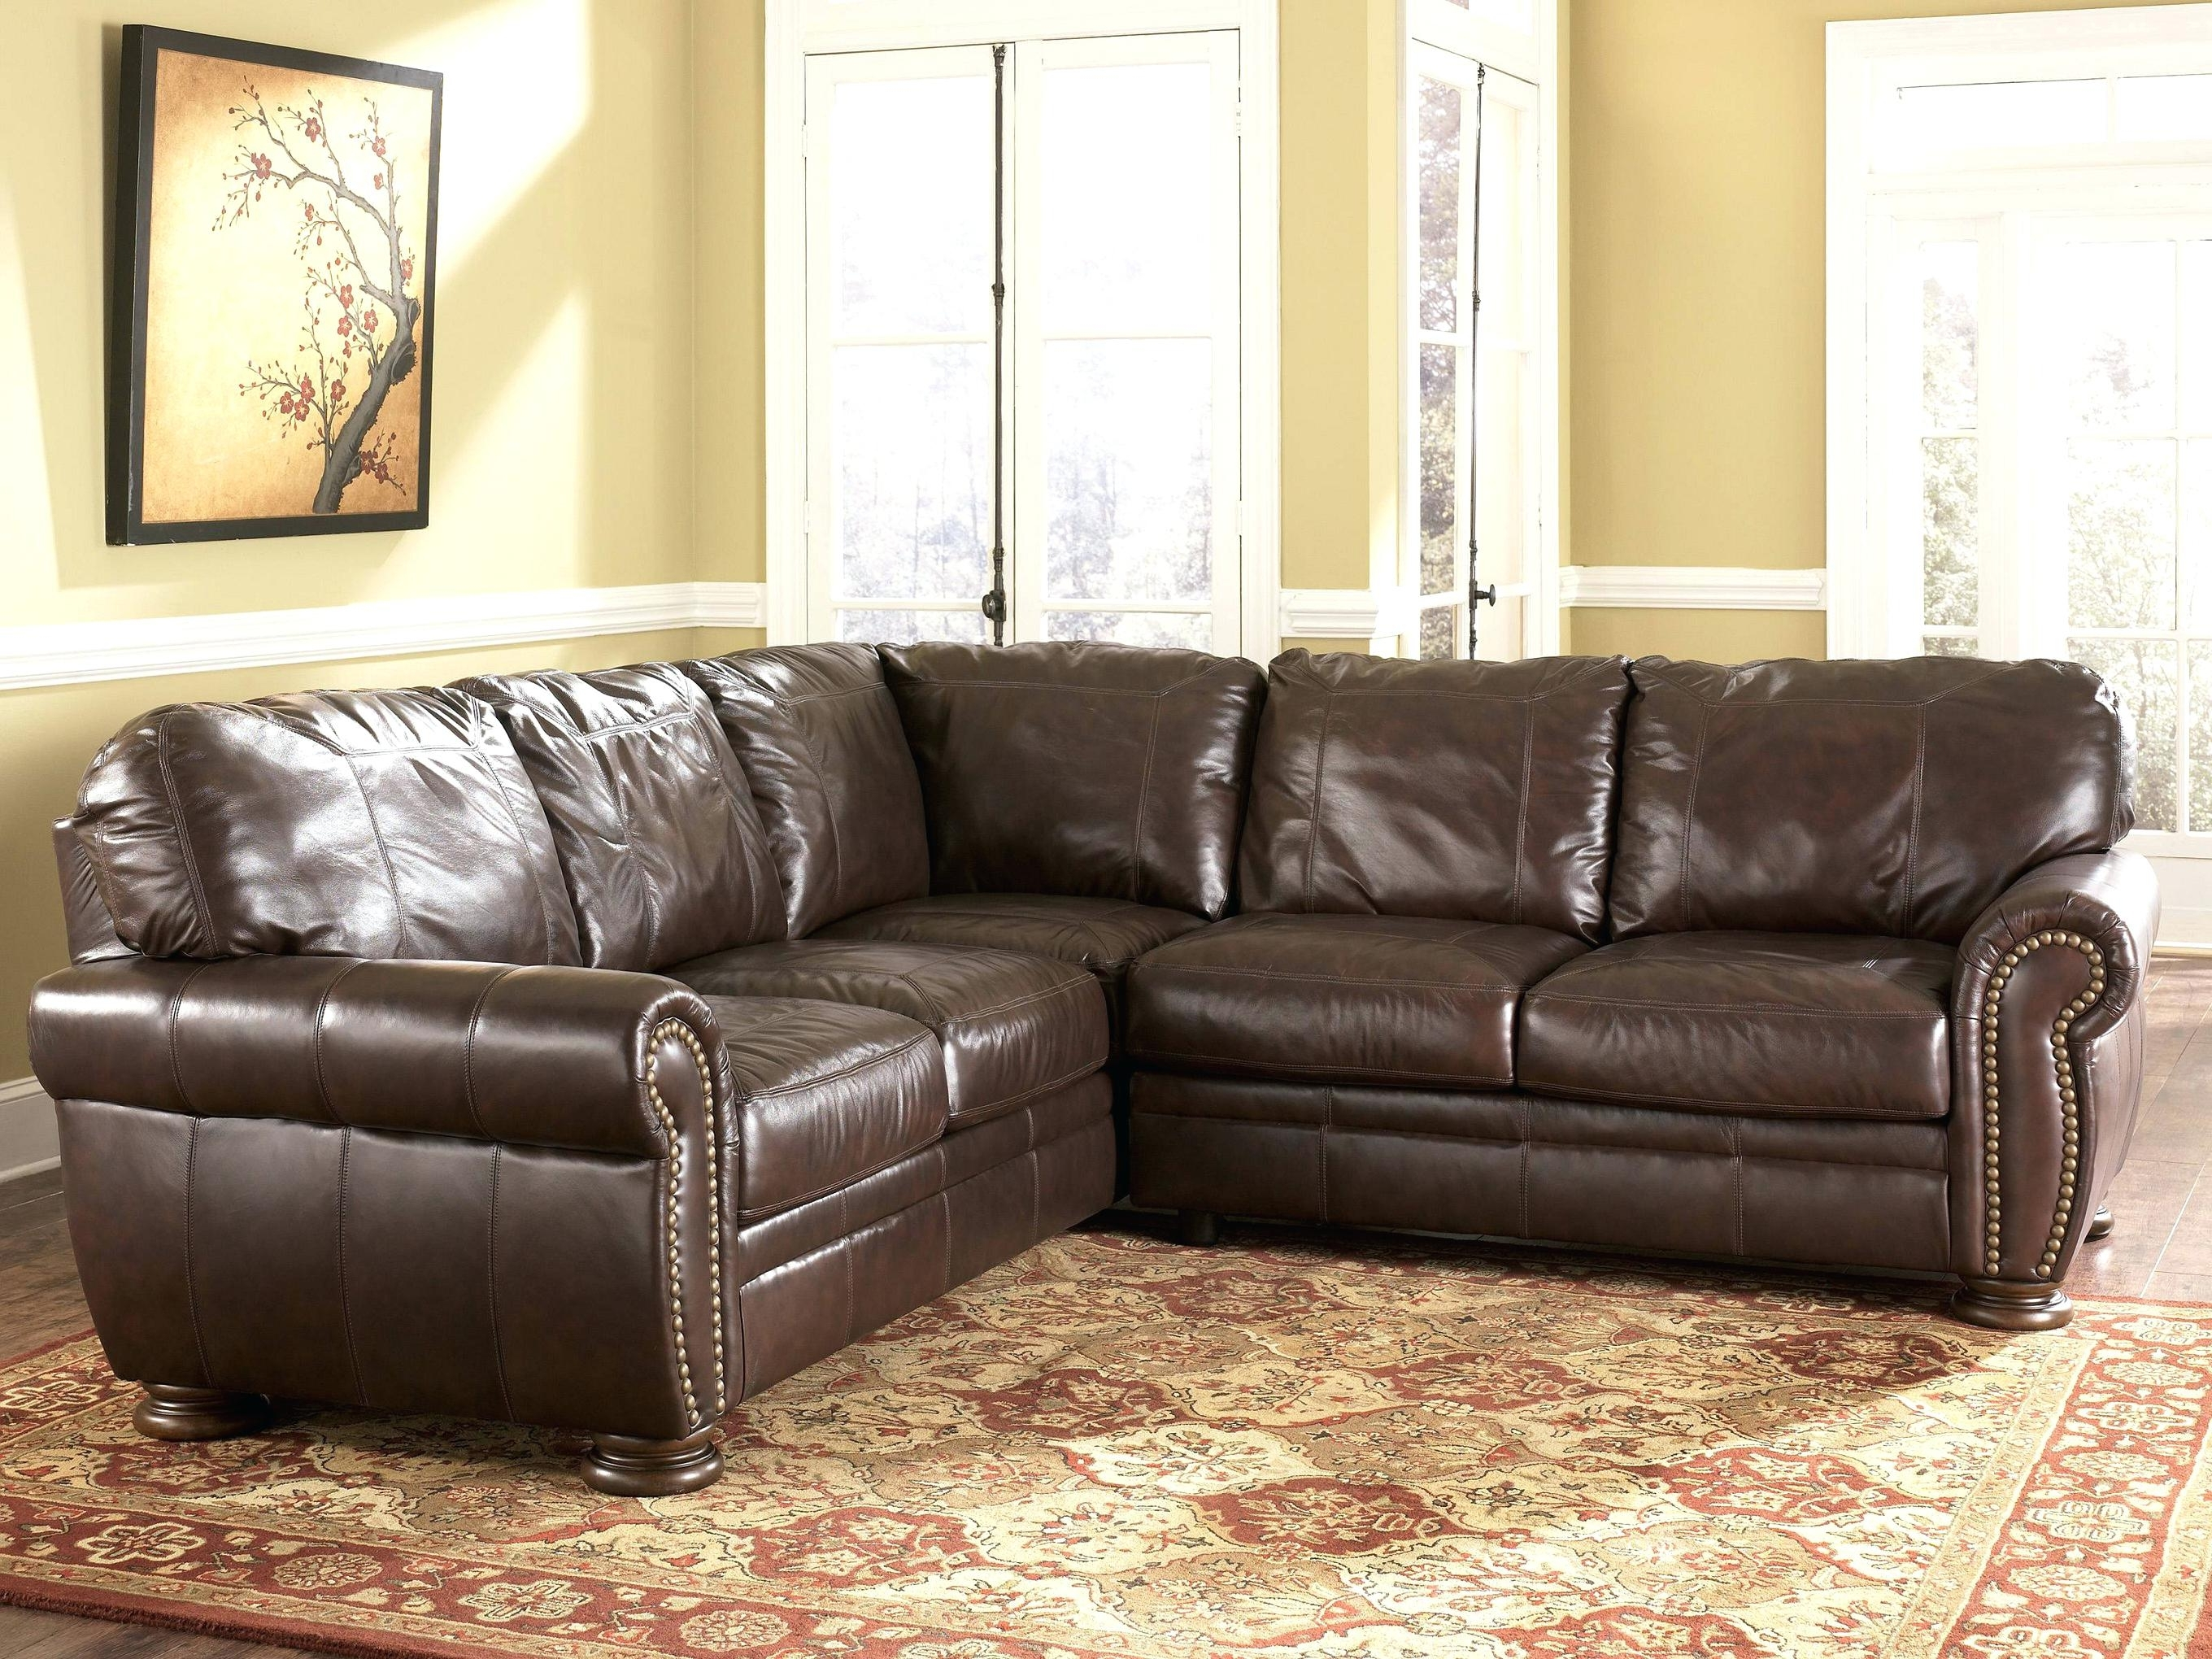 Used Sectional Sofas Intended For Most Recent Discount Sofa Sectionals Cheap Used Sectional Sofas For Sale Black (View 7 of 15)